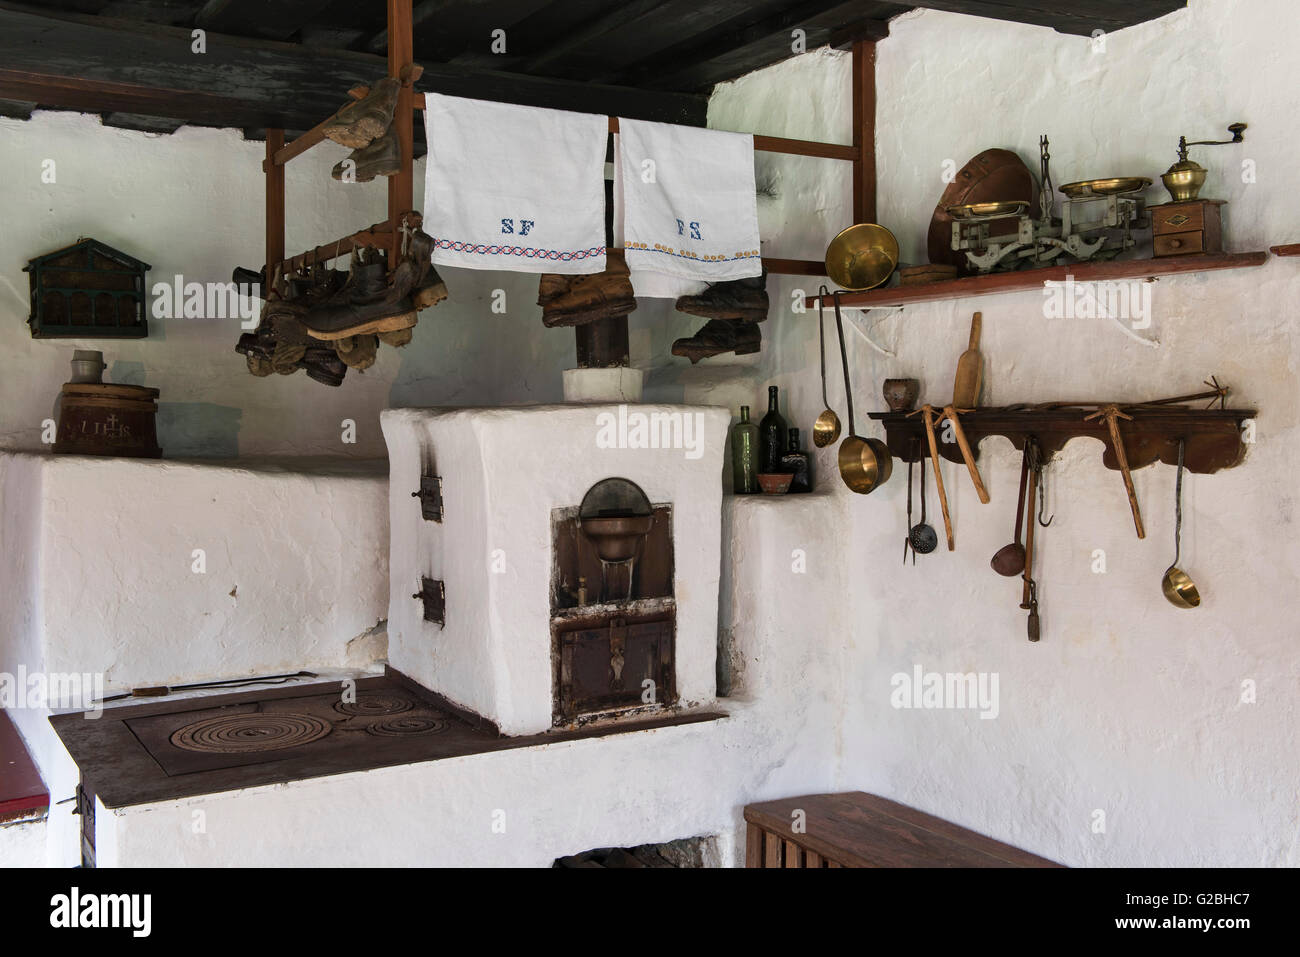 Original kitchen in an old farmhouse, Denkmalhof Maurergut, Zederhaus, Lungau, Salzburg, Austria - Stock Image